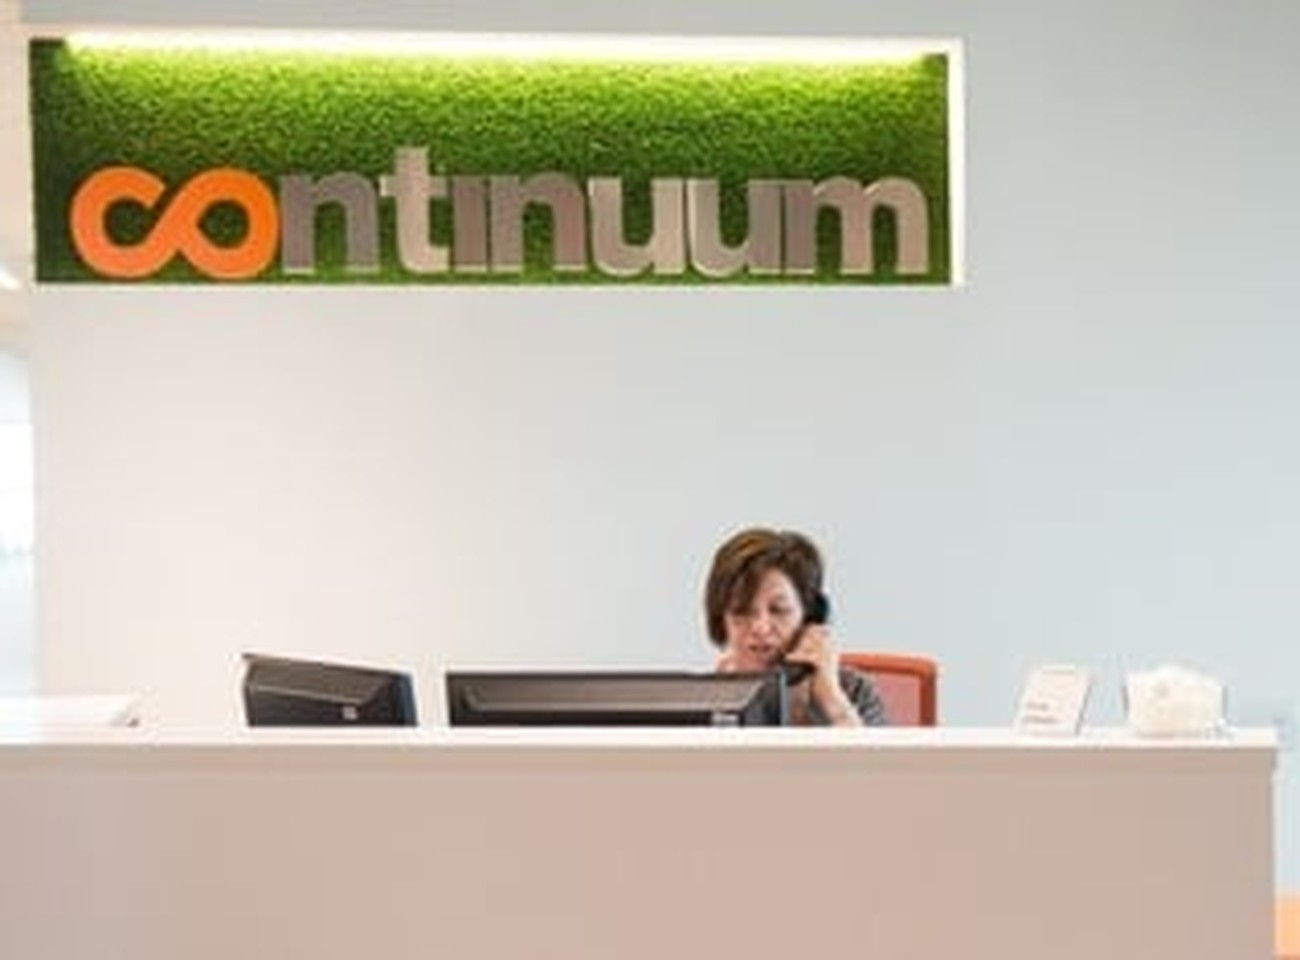 Continuum Managed Services Careers